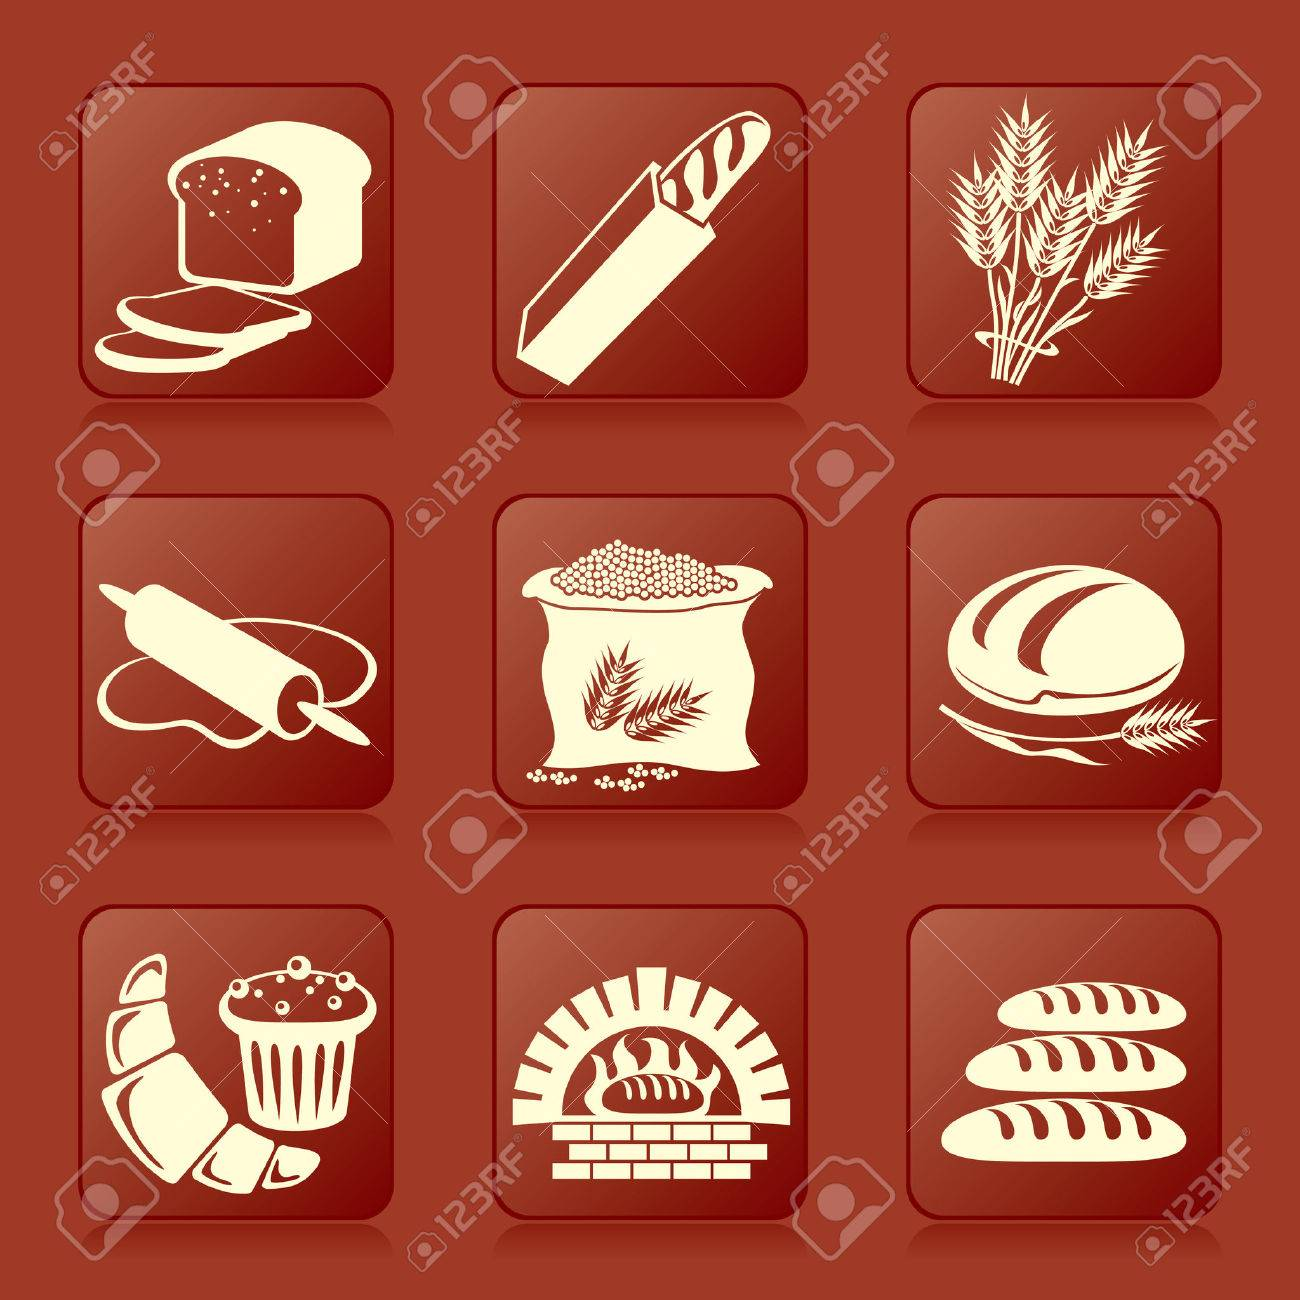 set of vector silhouette icons of bread and pastry Stock Vector - 8408950